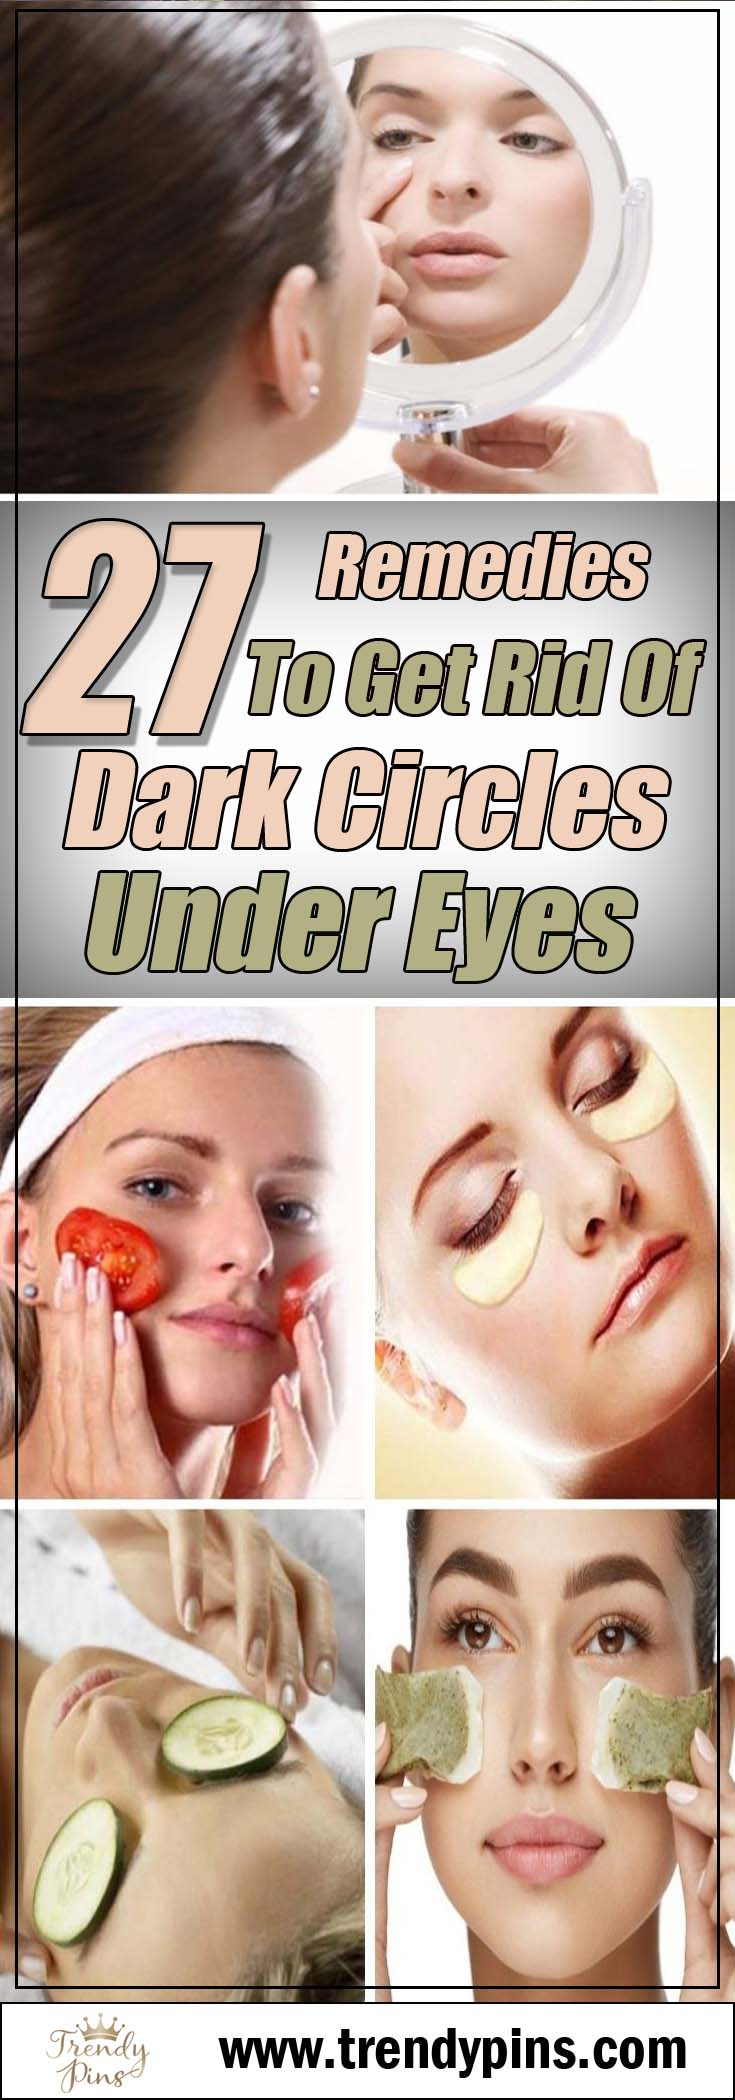 27 Amazing Homemade Remedies To Get Rid Of Dark Circles Under Eyes #dark circles under eyes #beauty #trendypins